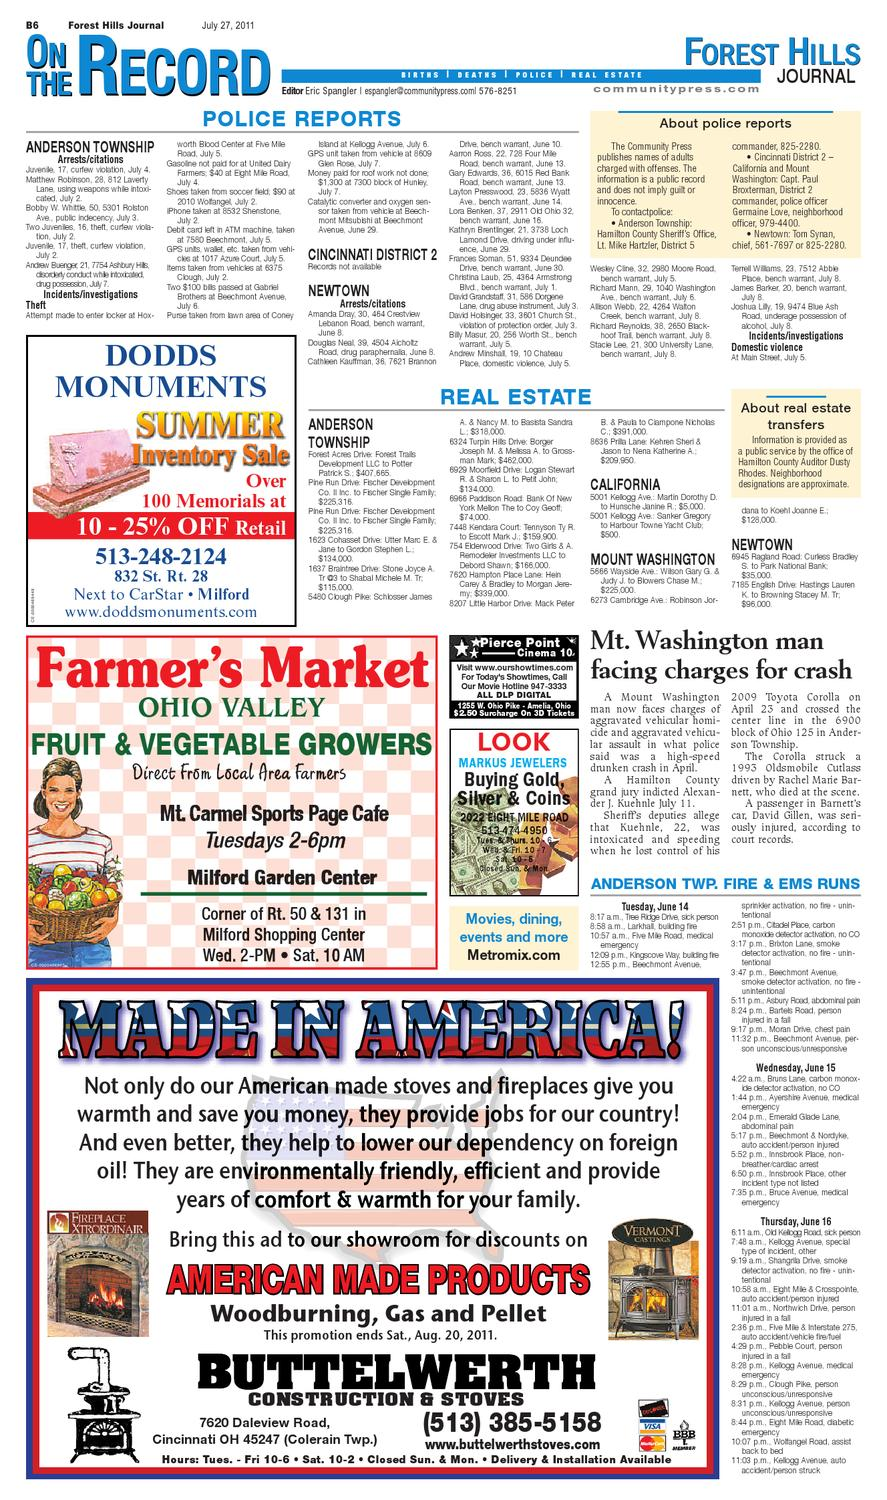 forest-hills-journal-072711 by Enquirer Media - issuu